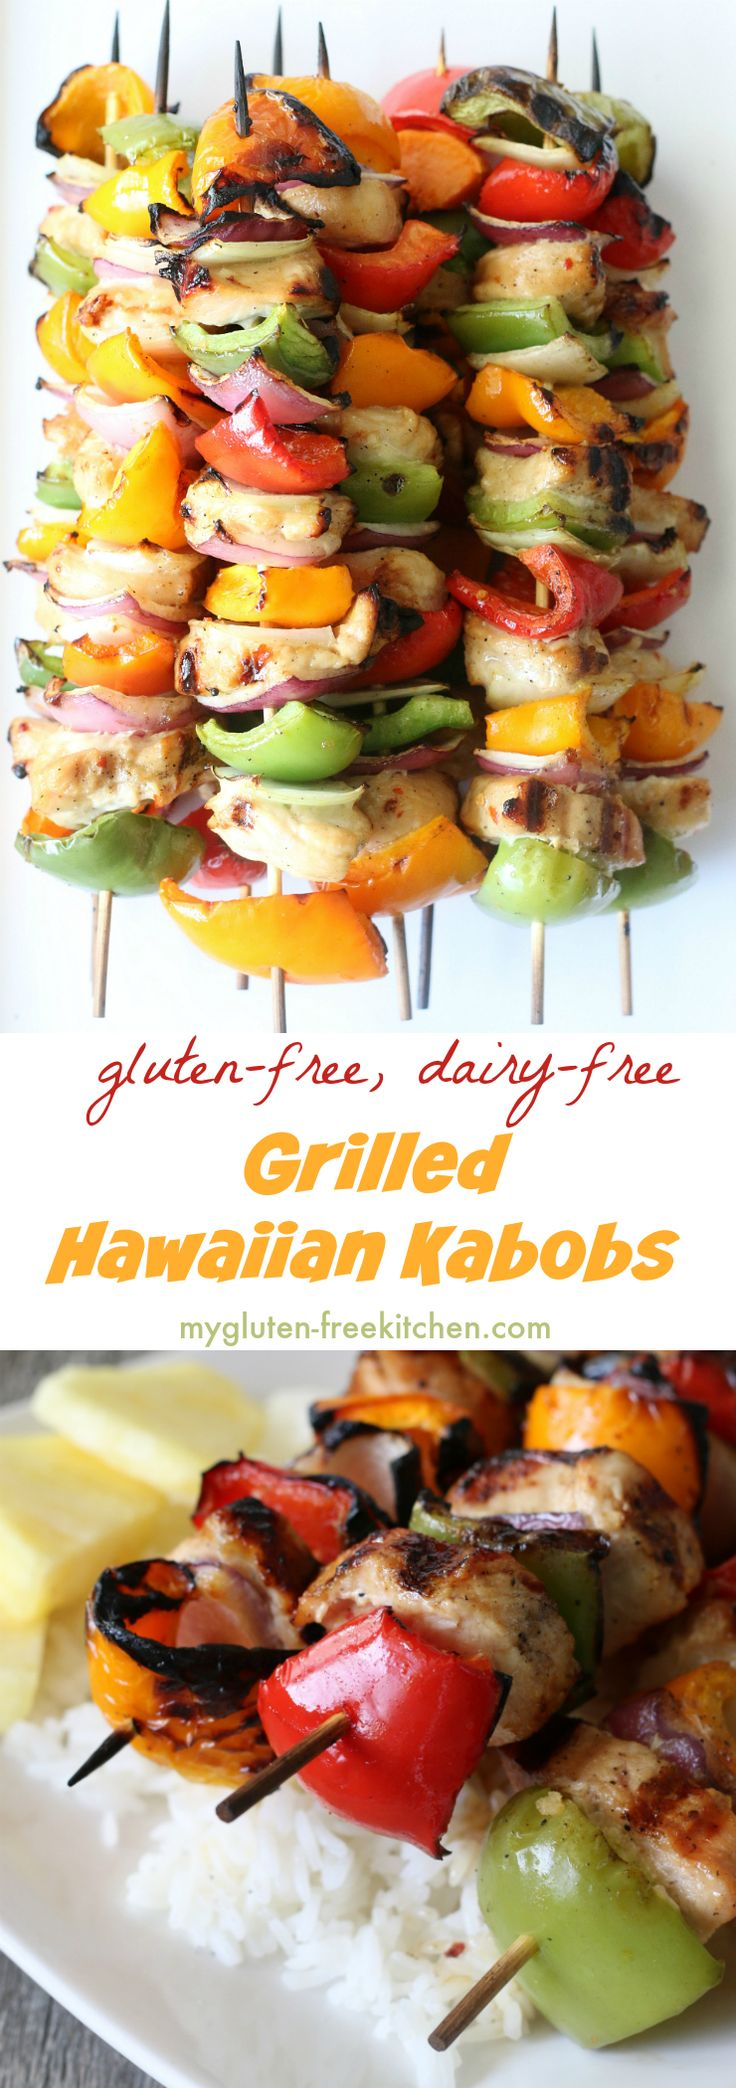 Grilled Hawaiian Kabobs that are gluten-free and dairy-free too! Delicious gluten-free grilling recipe!